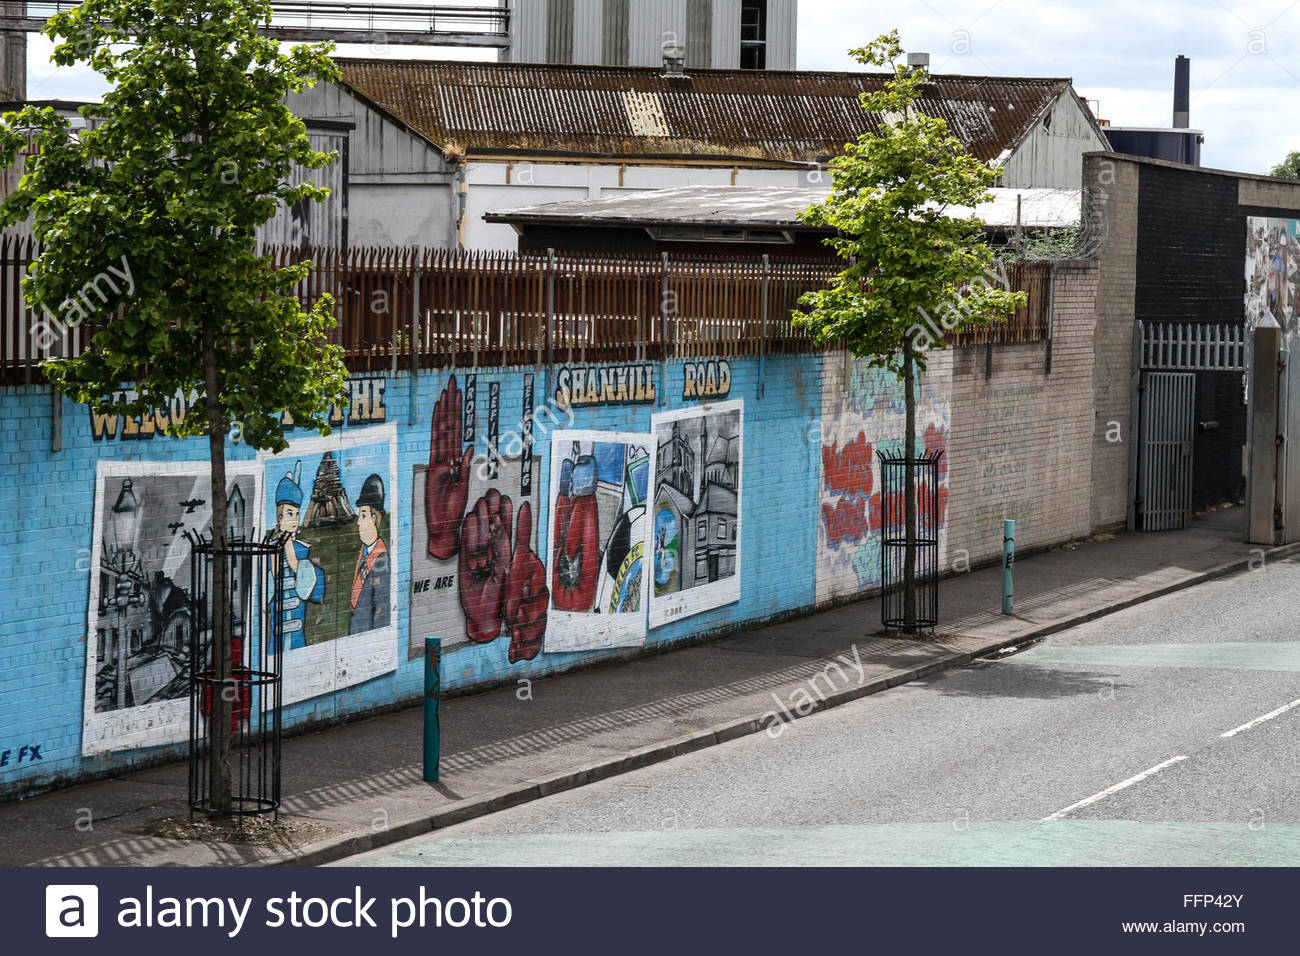 'Welcome to the Shankill Road' murals in Belfast. The Shankill Road area of Belfast.  Editorial use only. - Stock Image